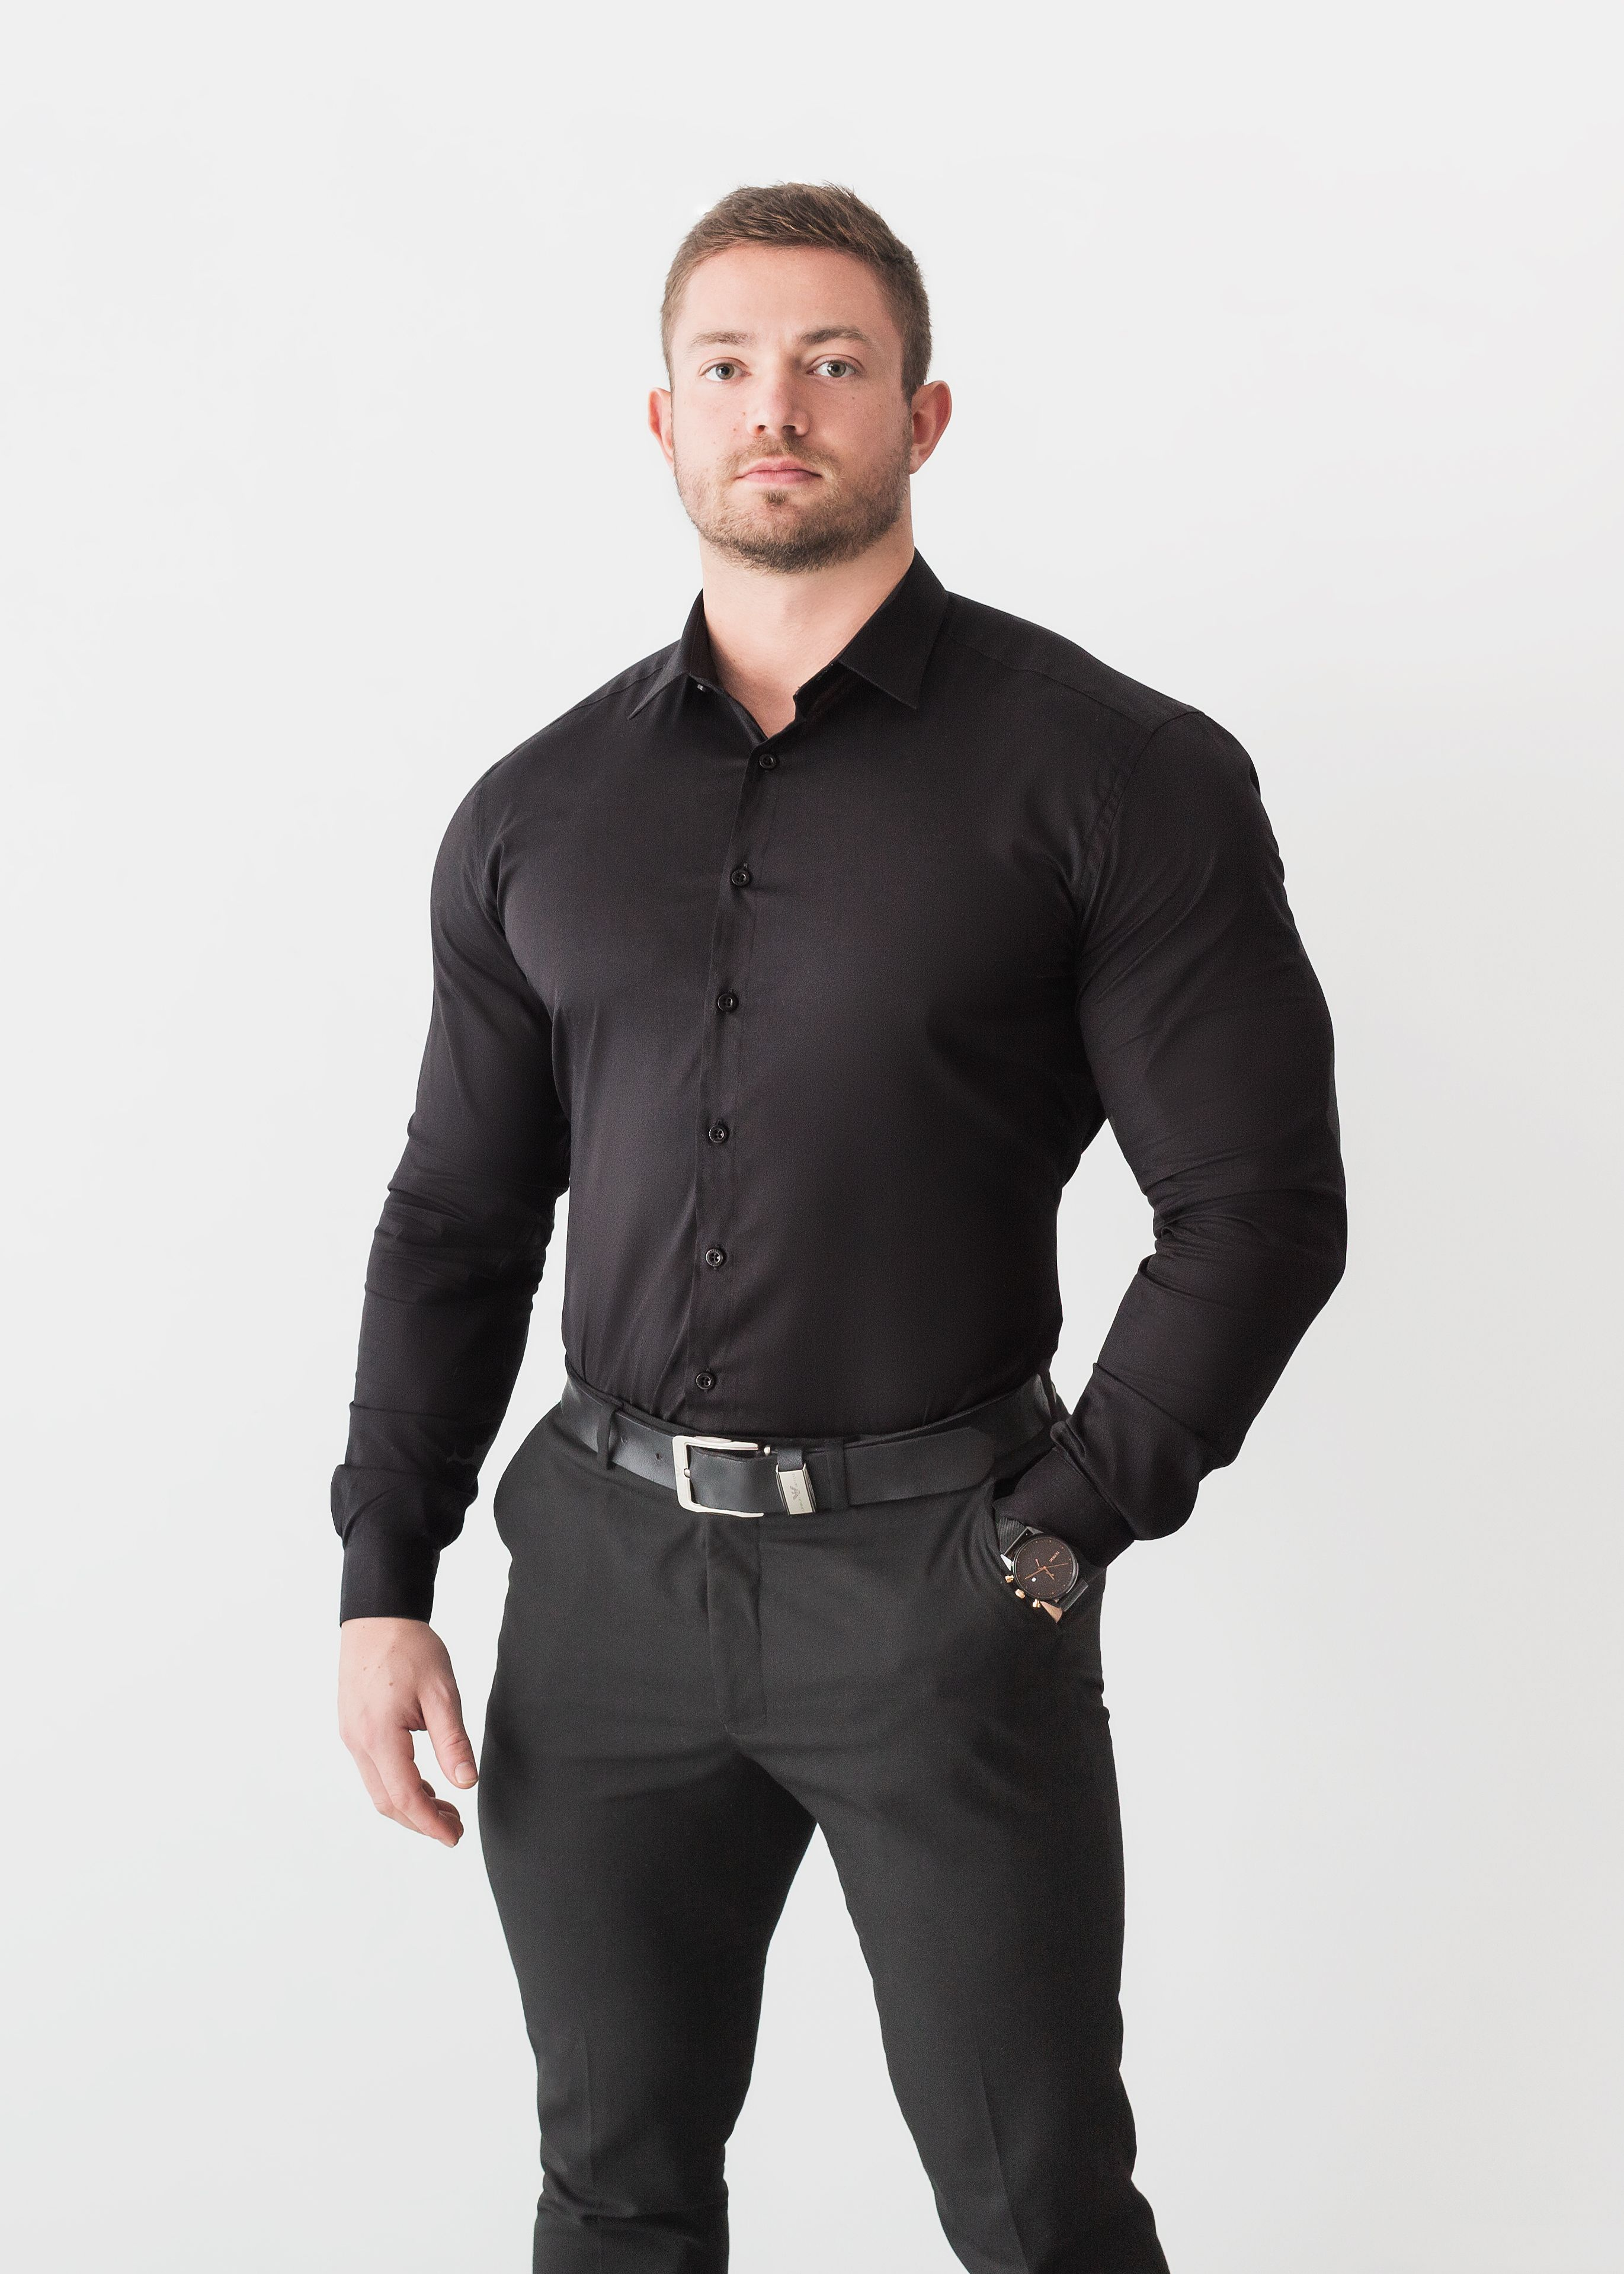 Black Tapered Fit Shirt Mens Fashion Suits Mens Outfits Workout Shirts [ 3837 x 2741 Pixel ]